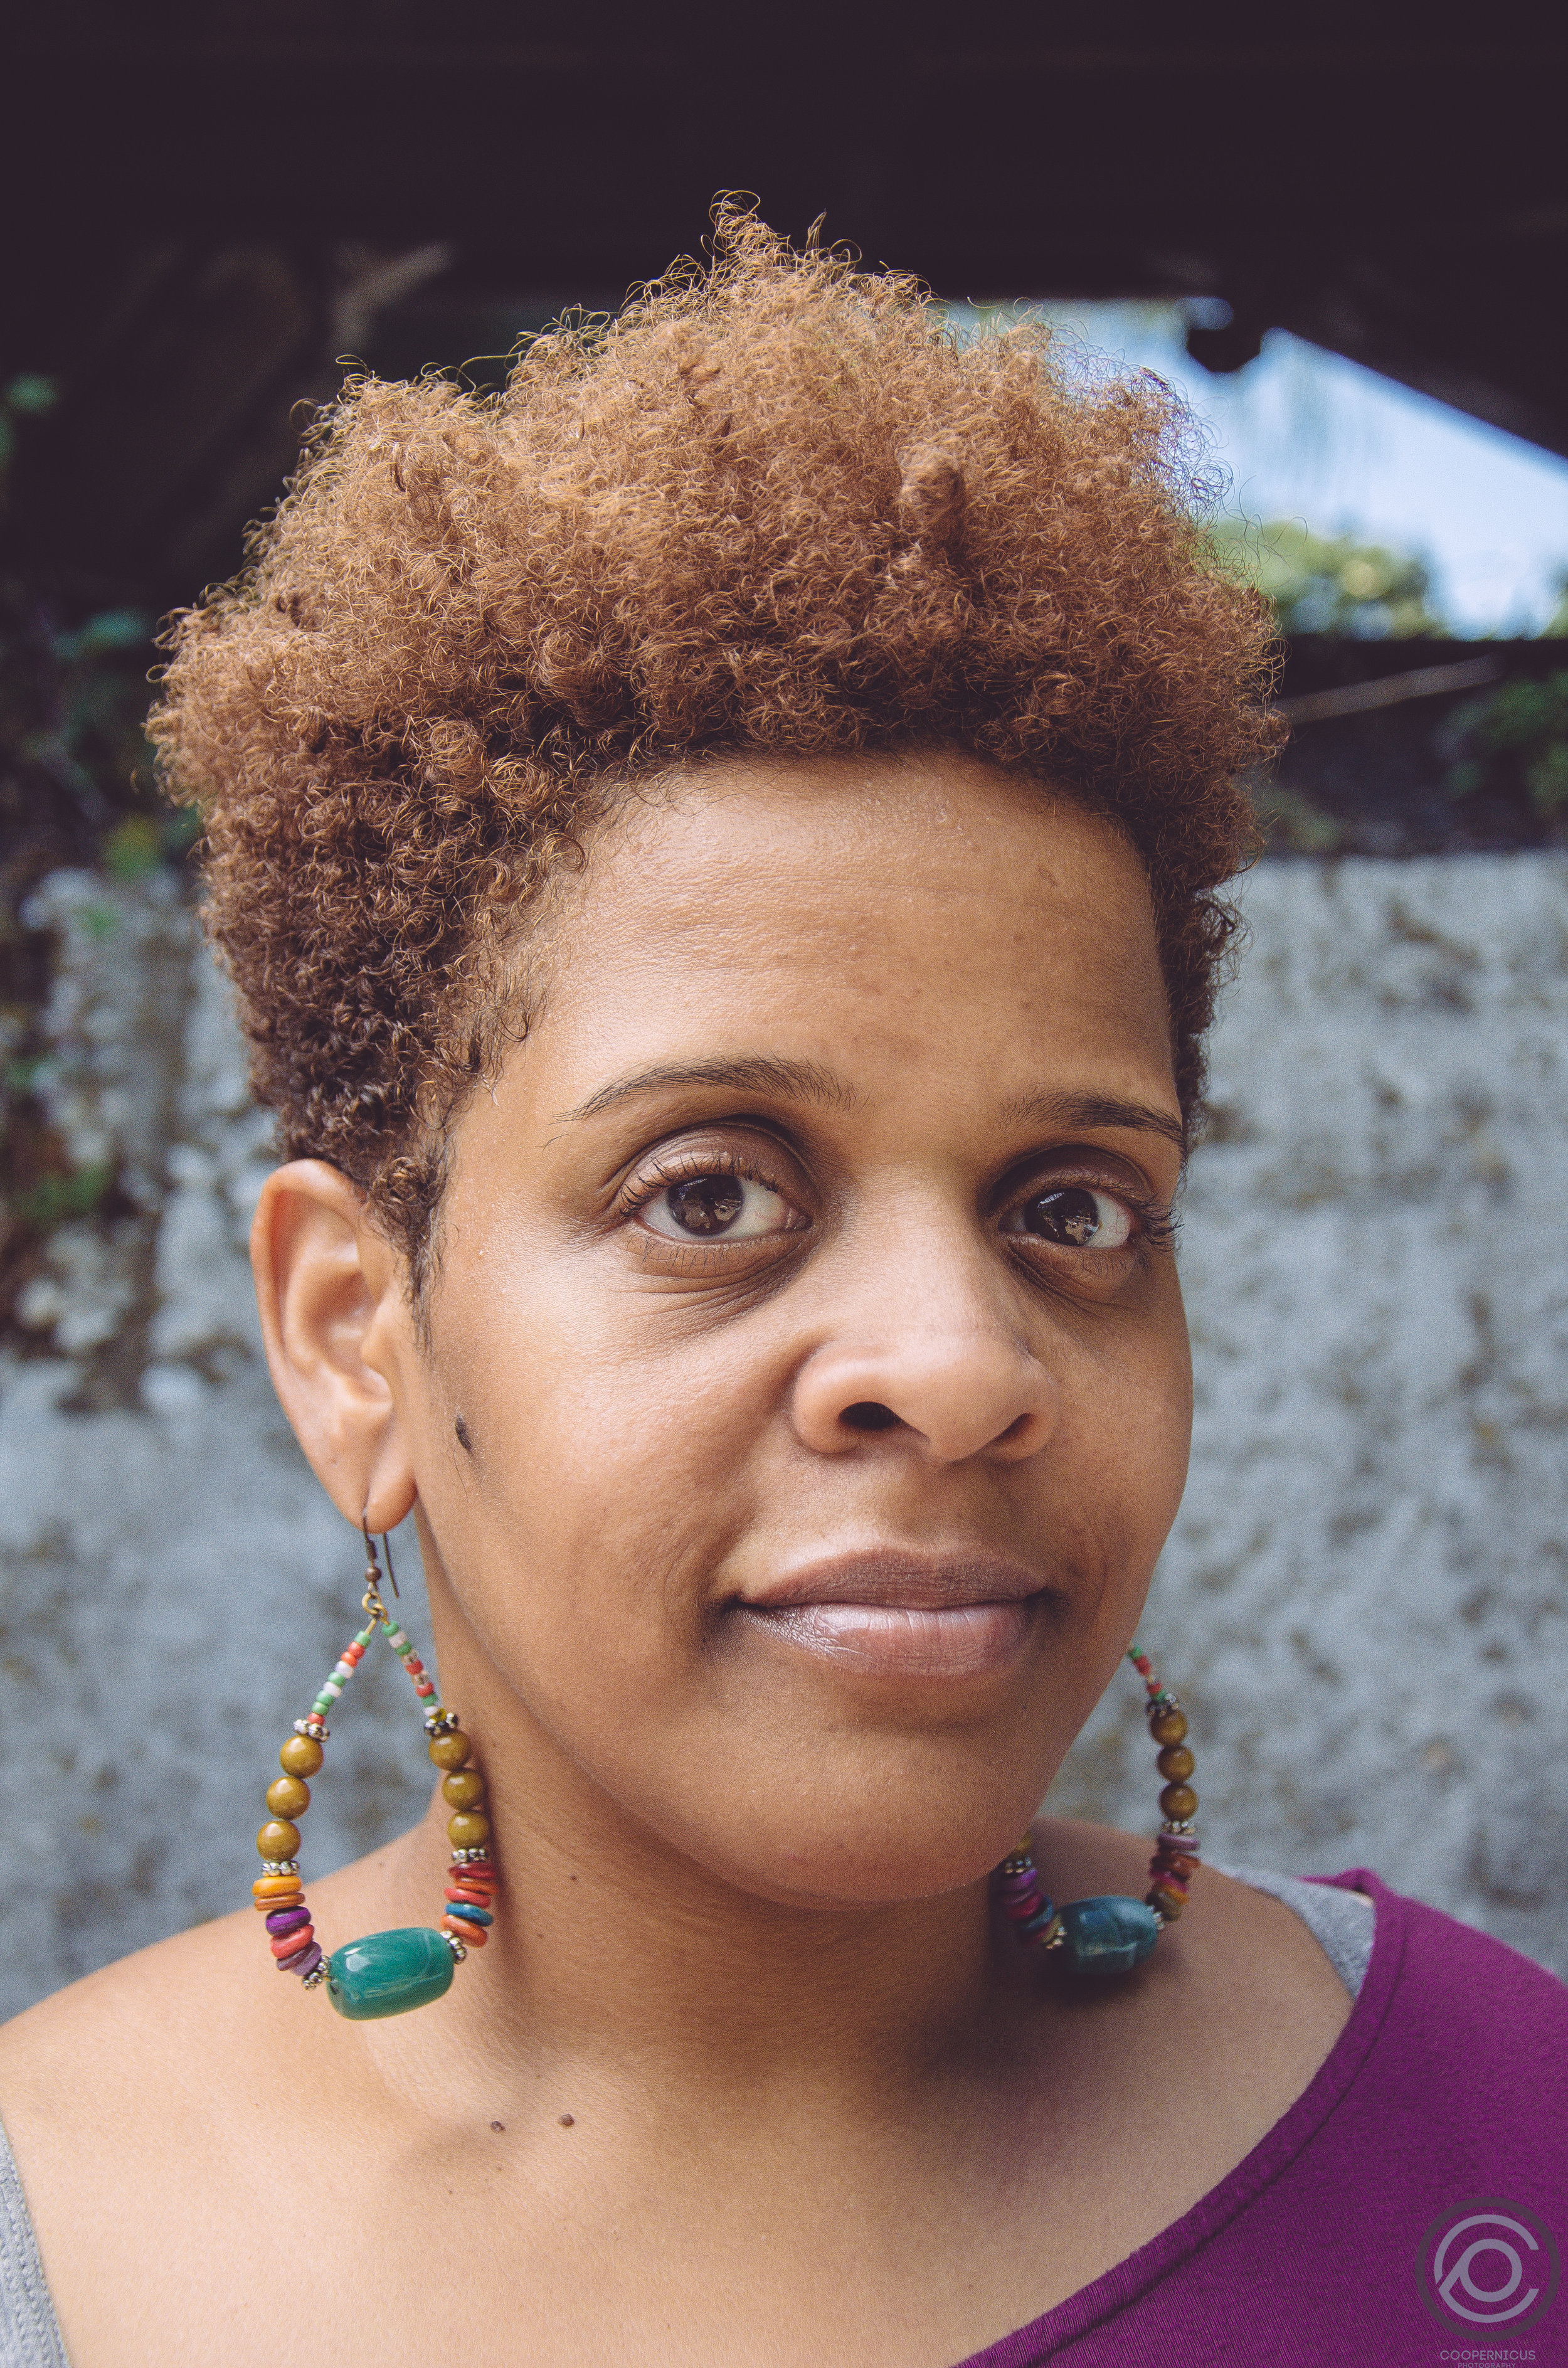 Stacey Rose, Playwright